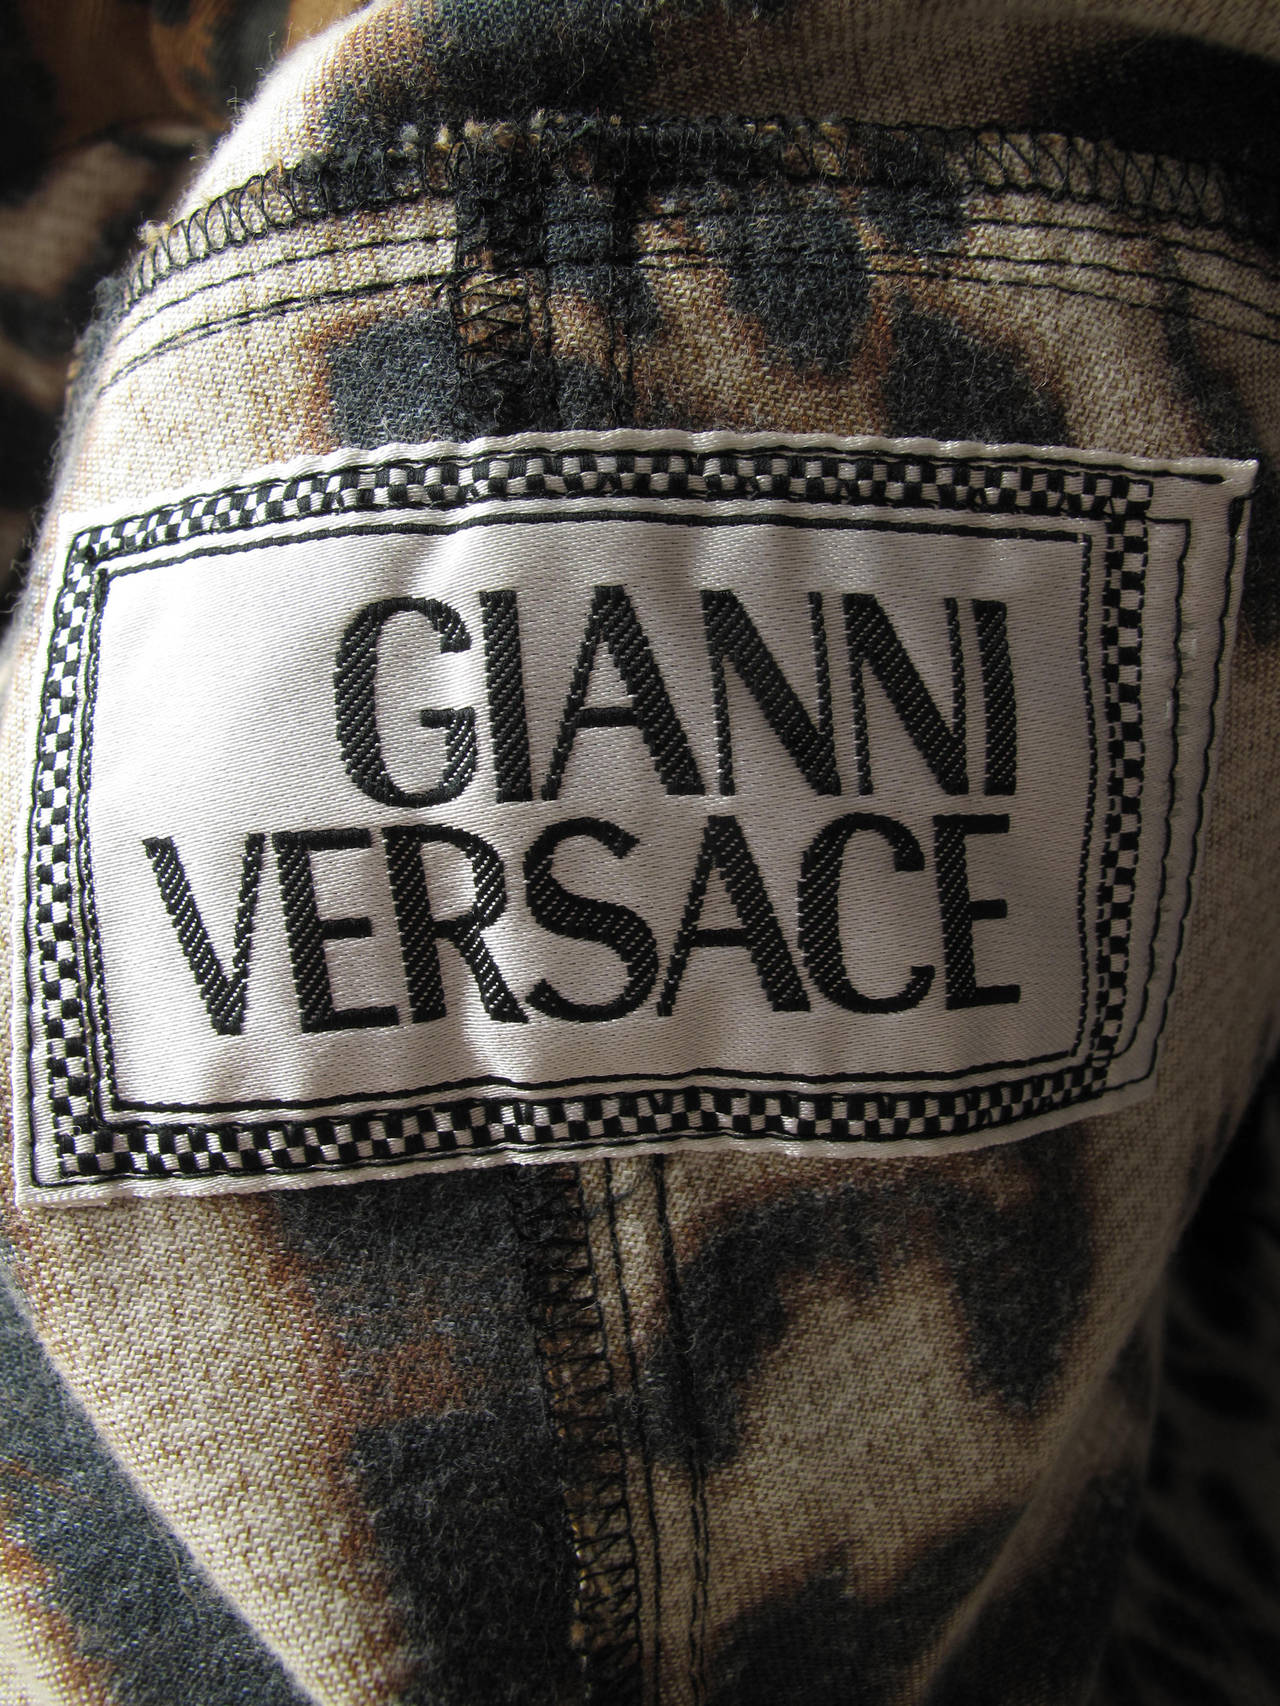 1992 Gianni Versace Leopard Denim Jacket and Jeans 4